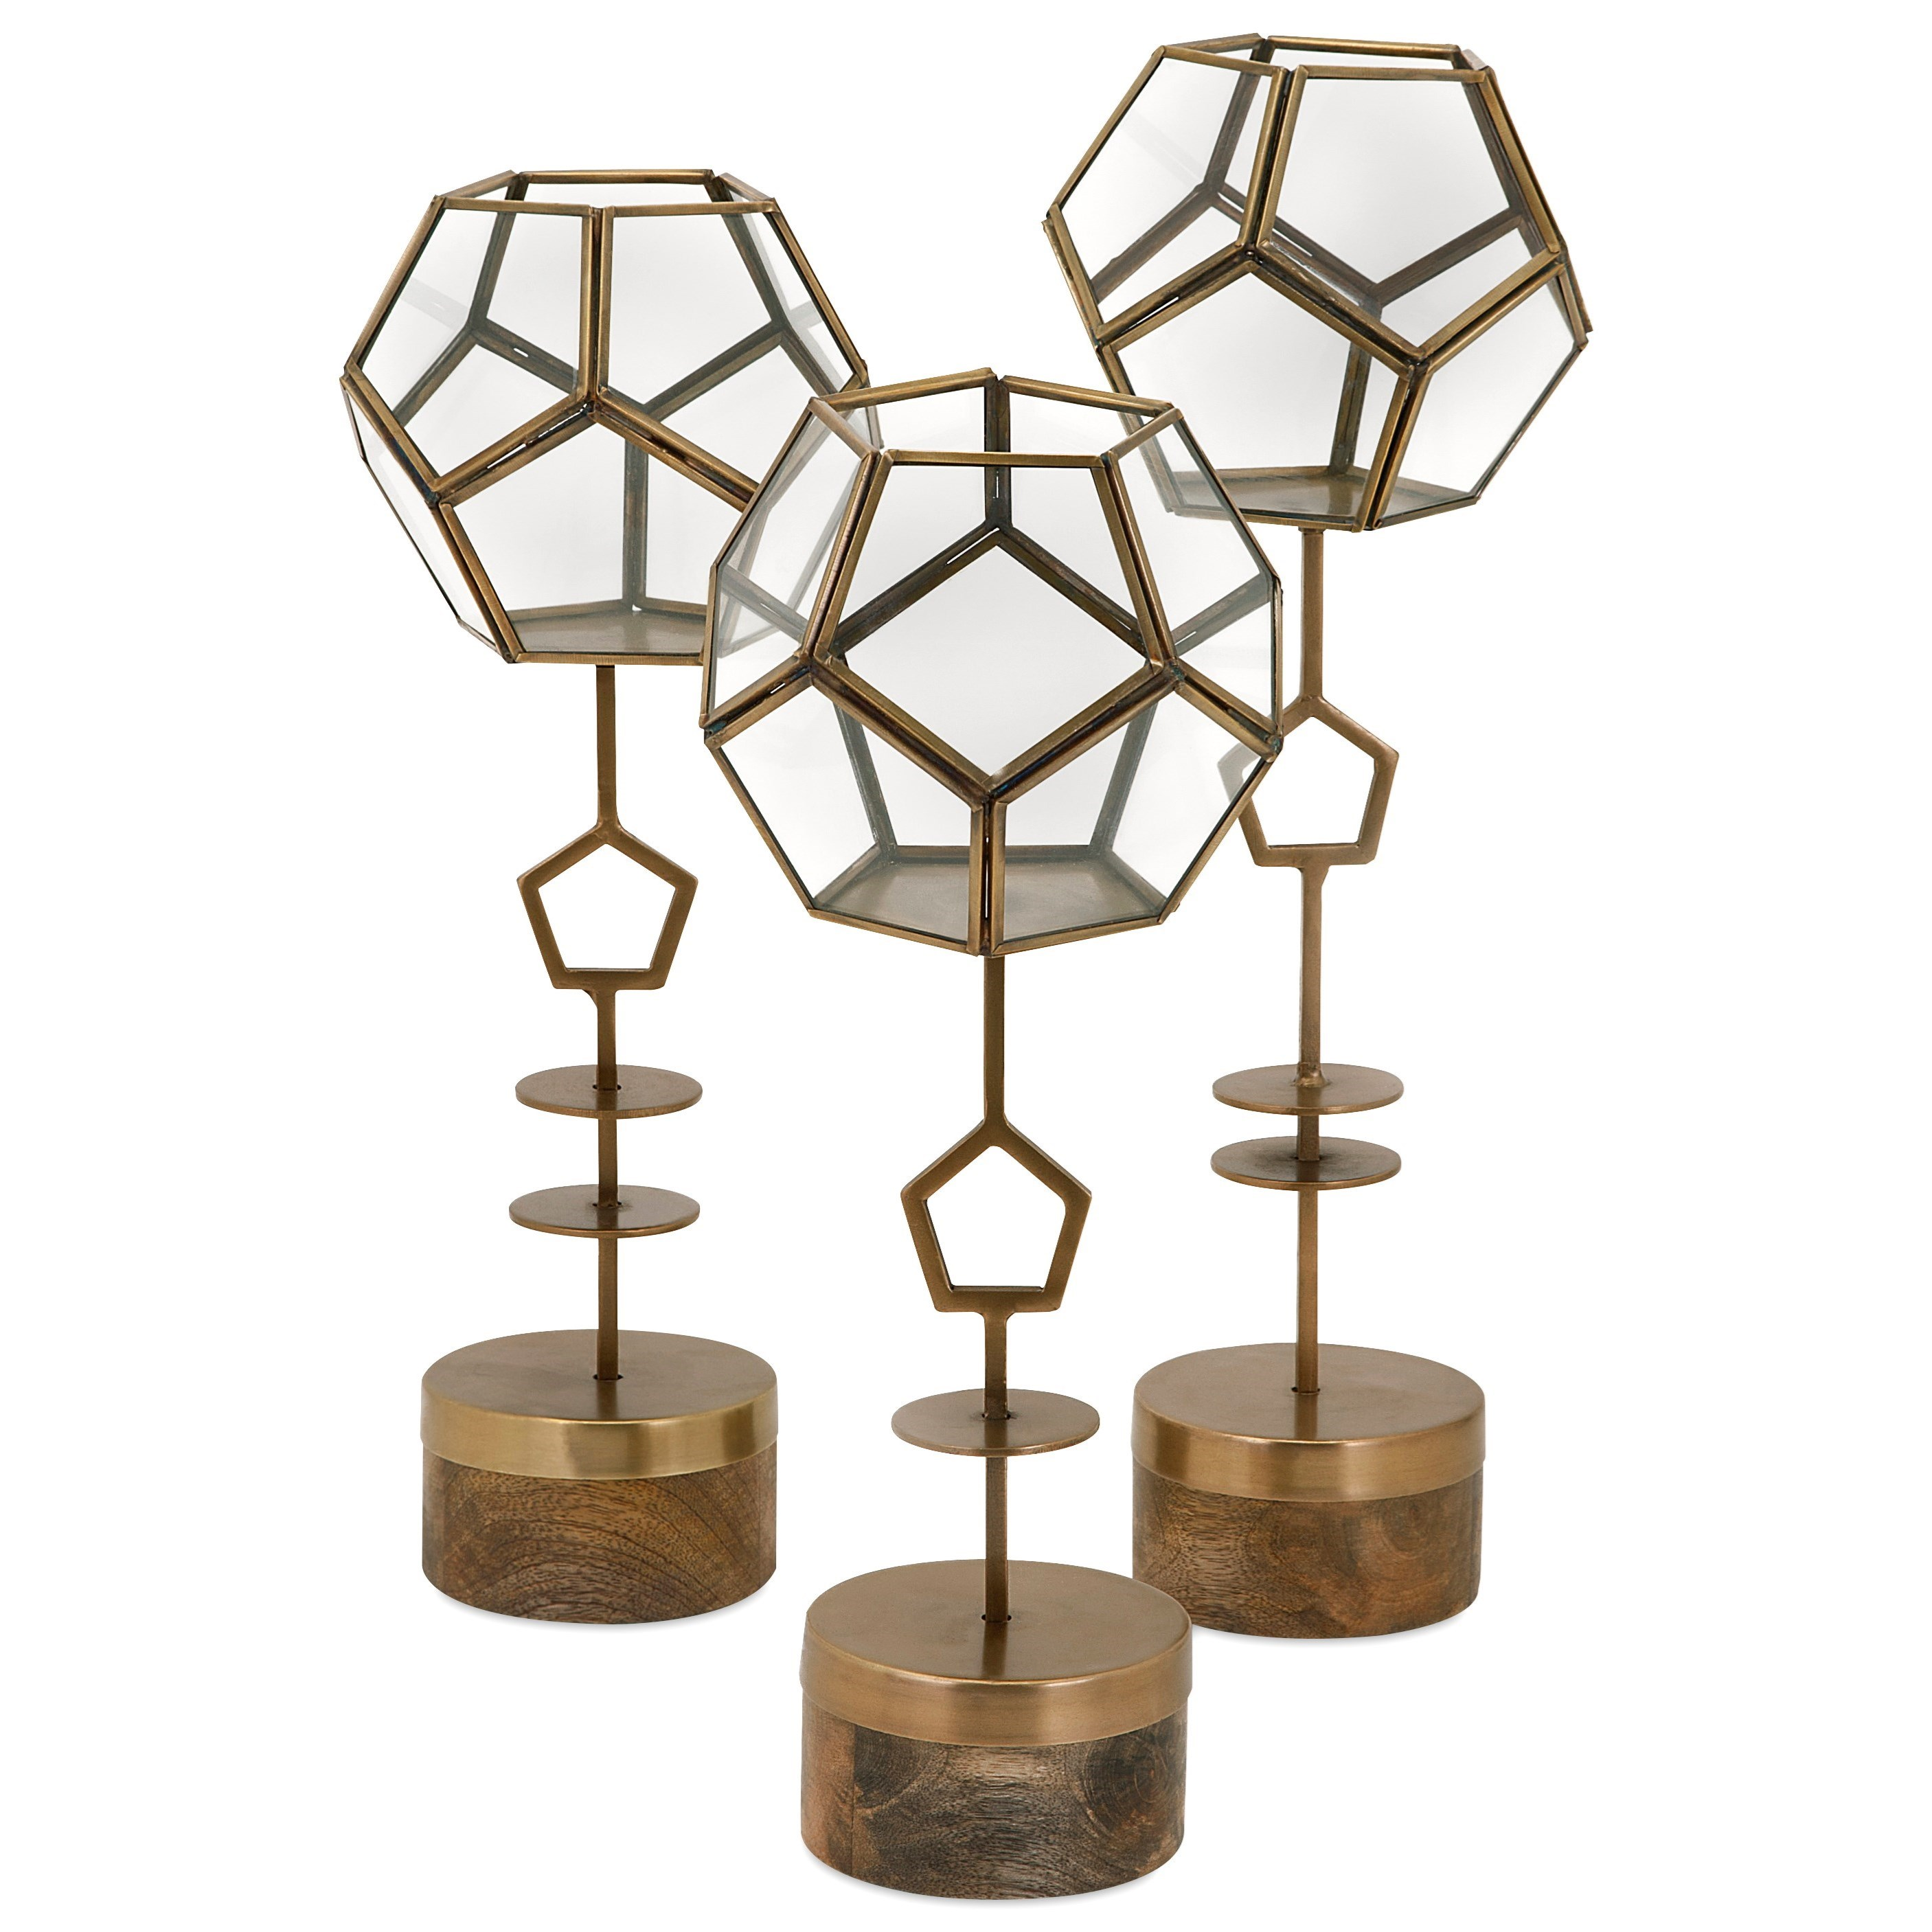 Accessories Jada Terrarium Stands - Set of 3 by IMAX Worldwide Home at Alison Craig Home Furnishings